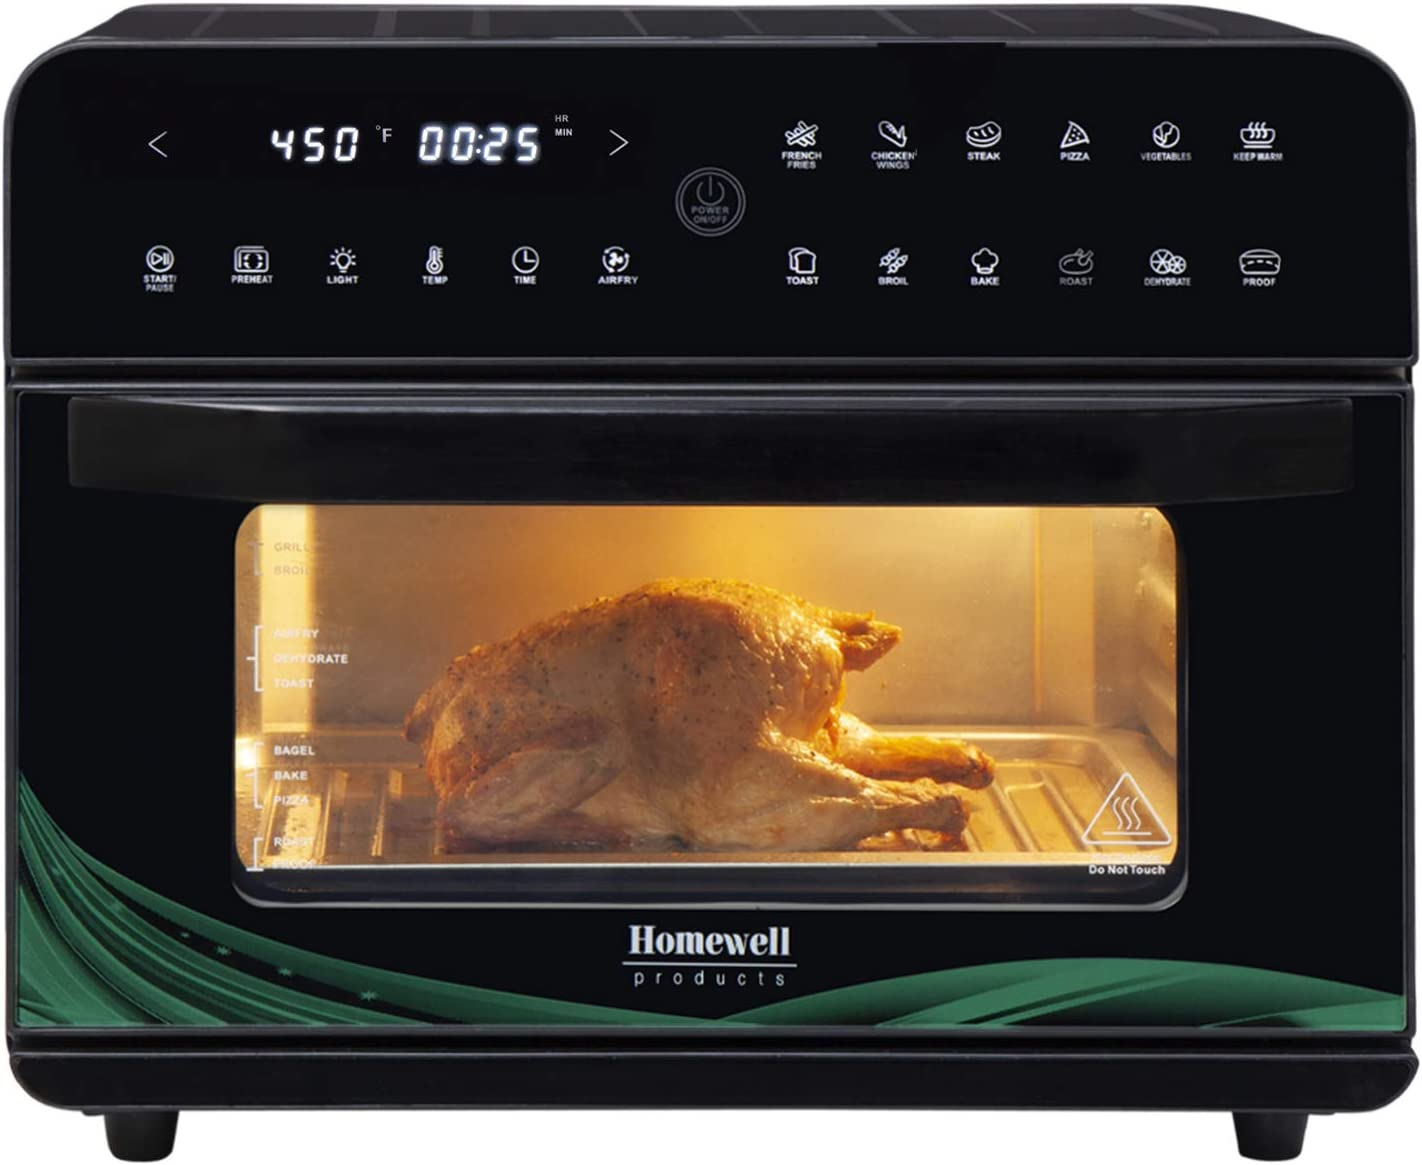 Homewell XL Large Air Fryer 1800W National products 26QT Convection Capacity 67% OFF of fixed price Oven